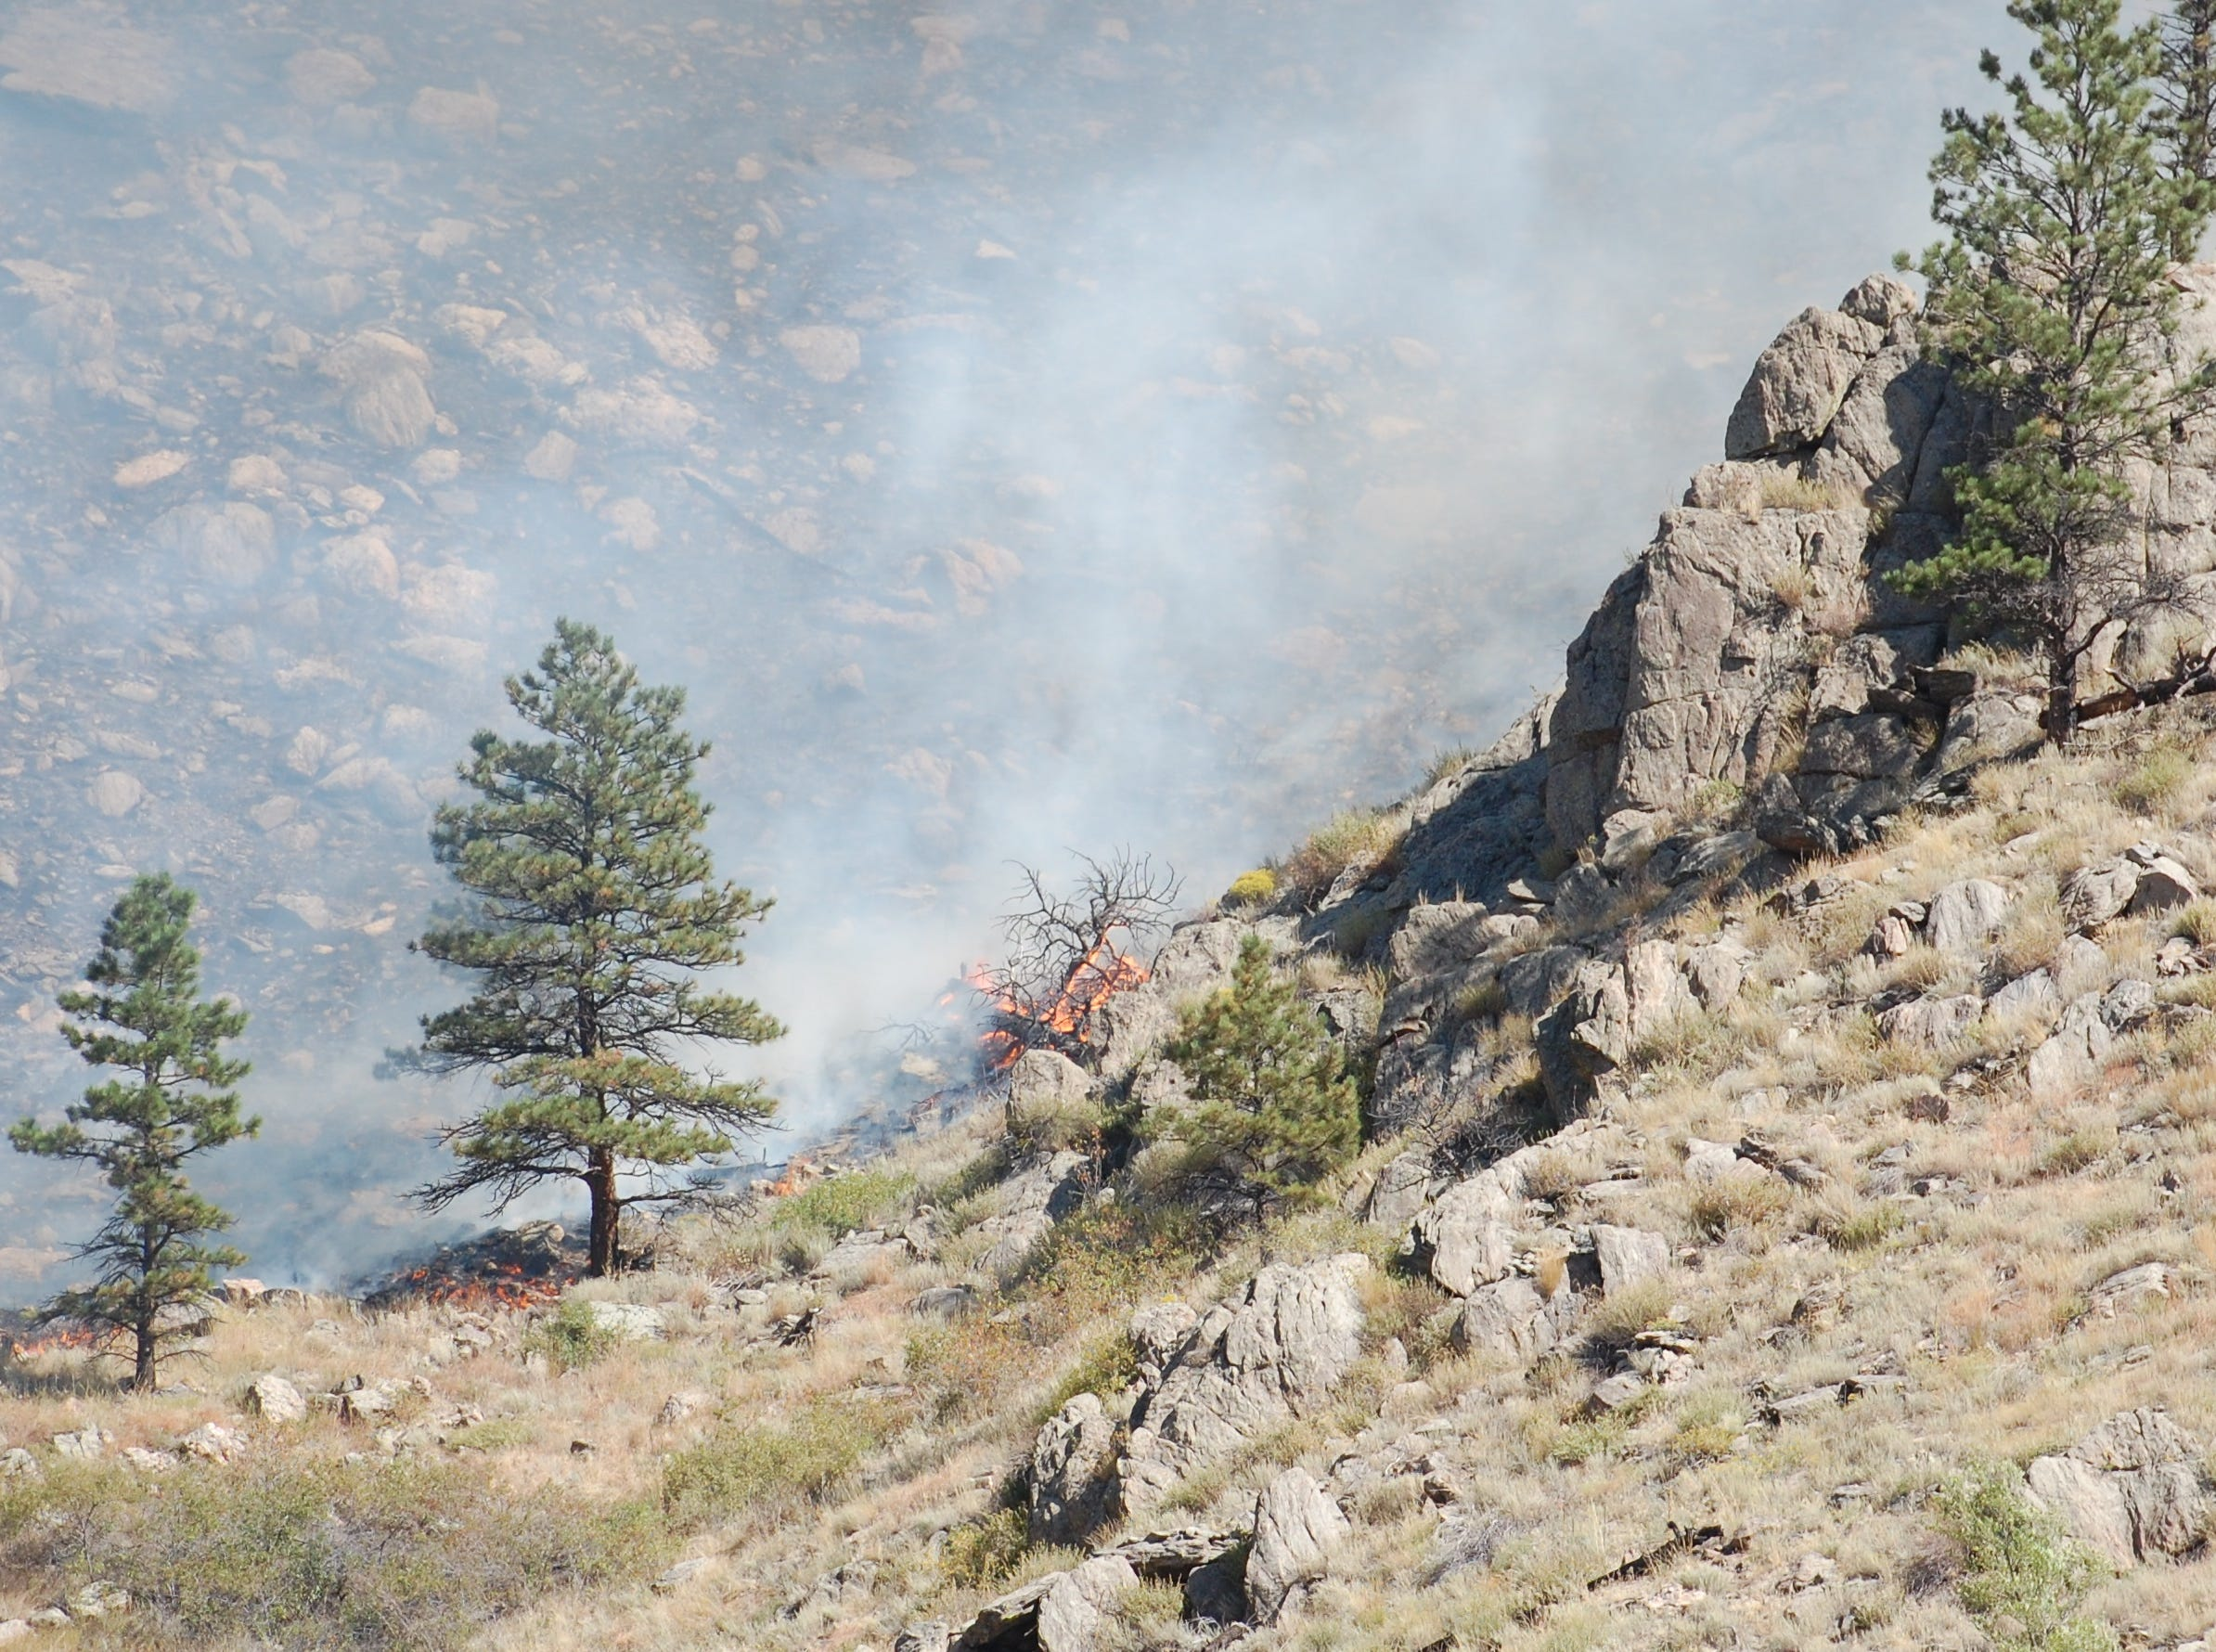 A shrub bursts into flames just west of Gateway Park and north of Colorado Highway 14 as the Seaman Fire burned towards the road on Wednesday.